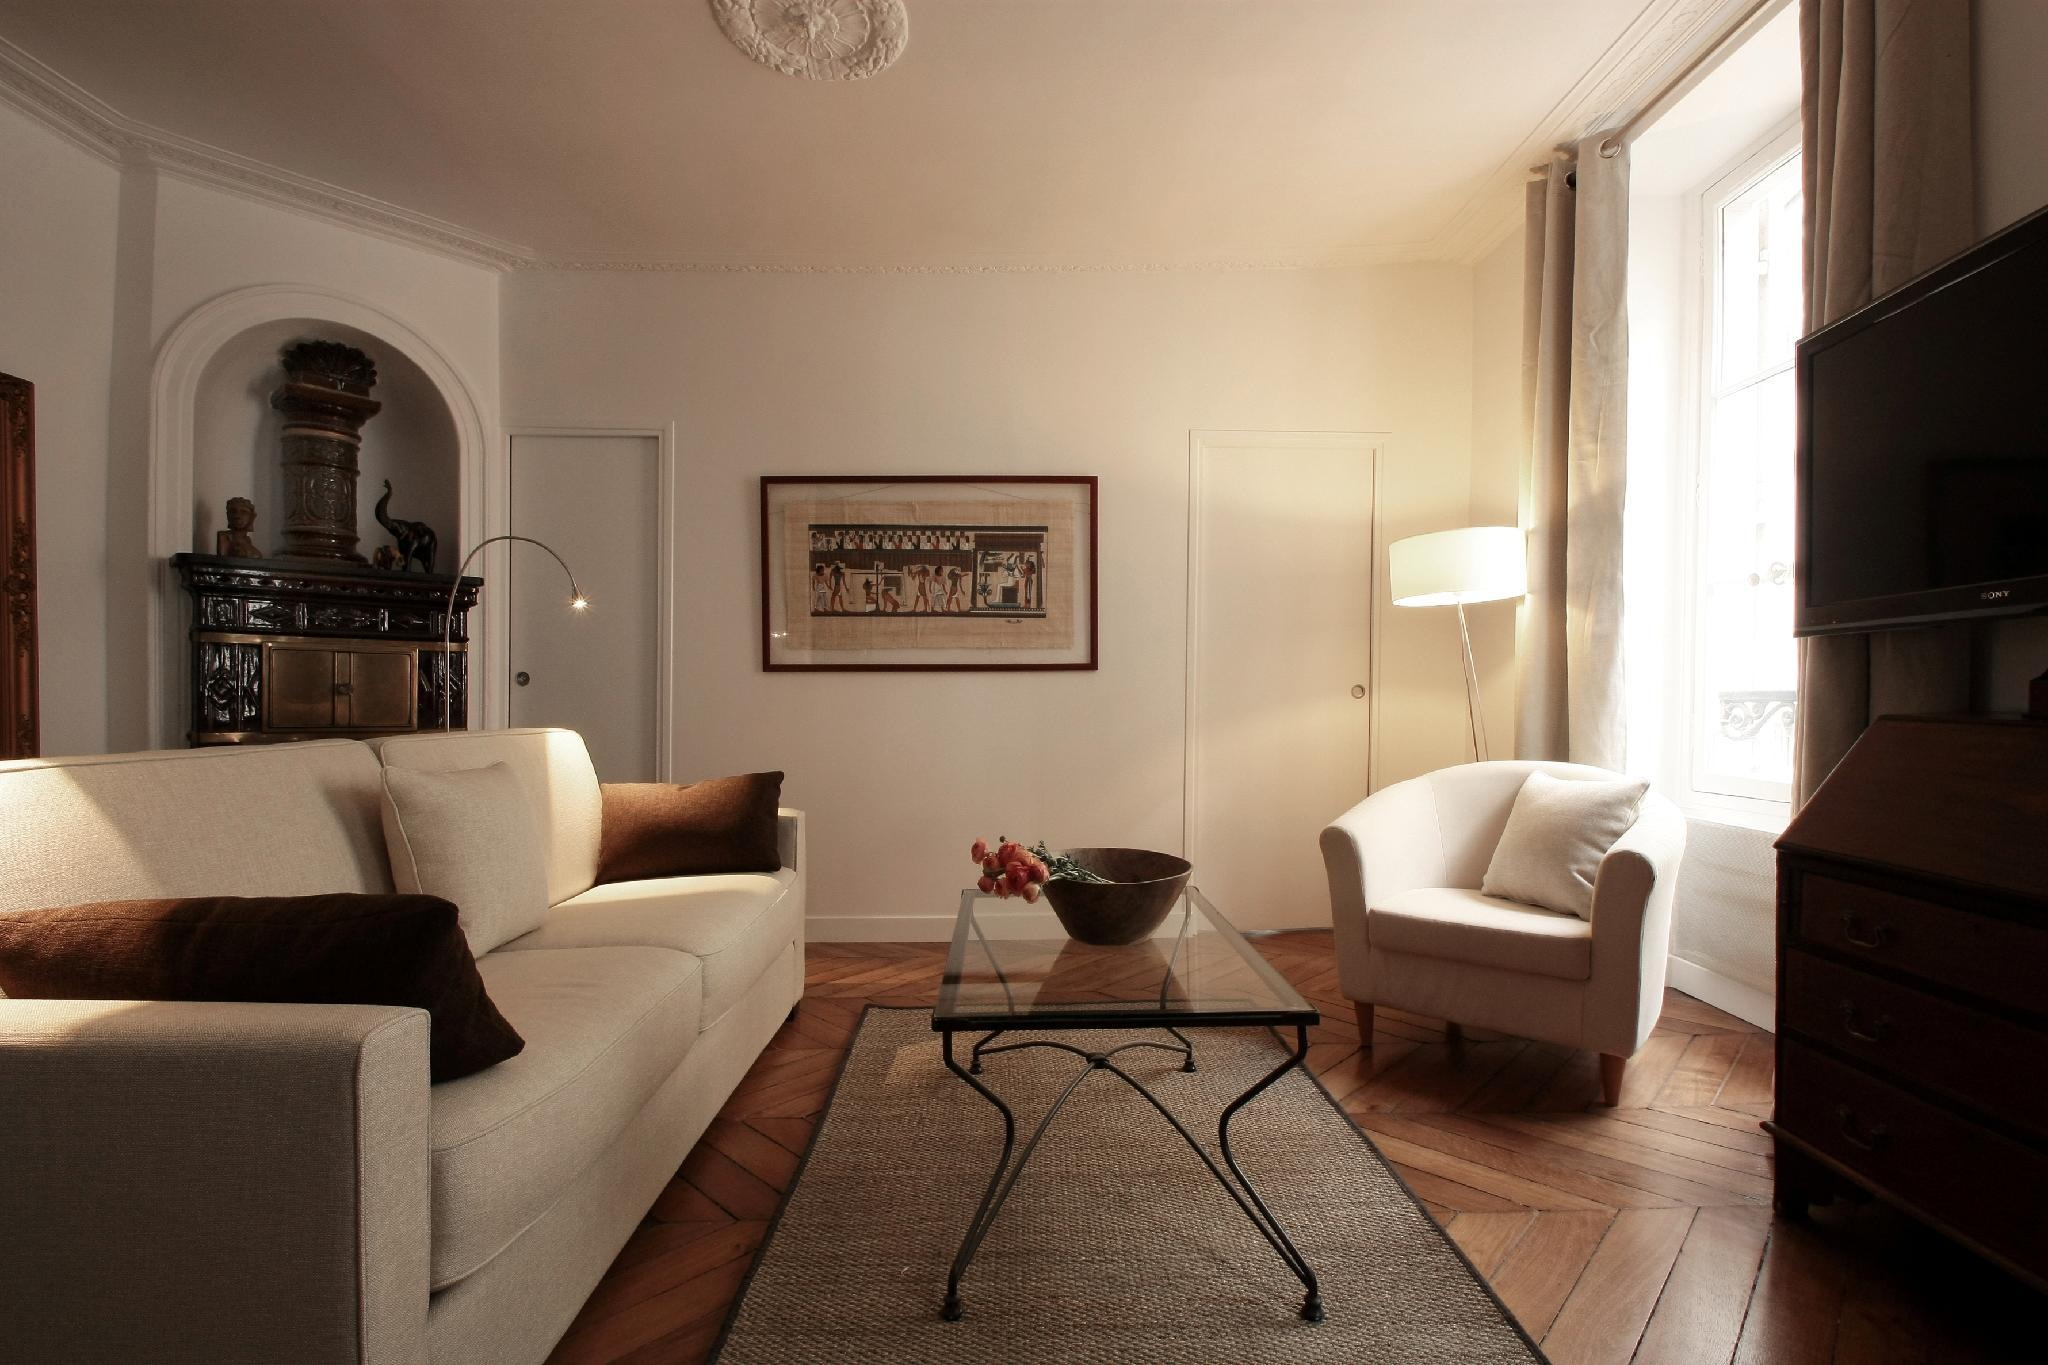 109466 - Charming apartment for 4 people in a typically Parisian district